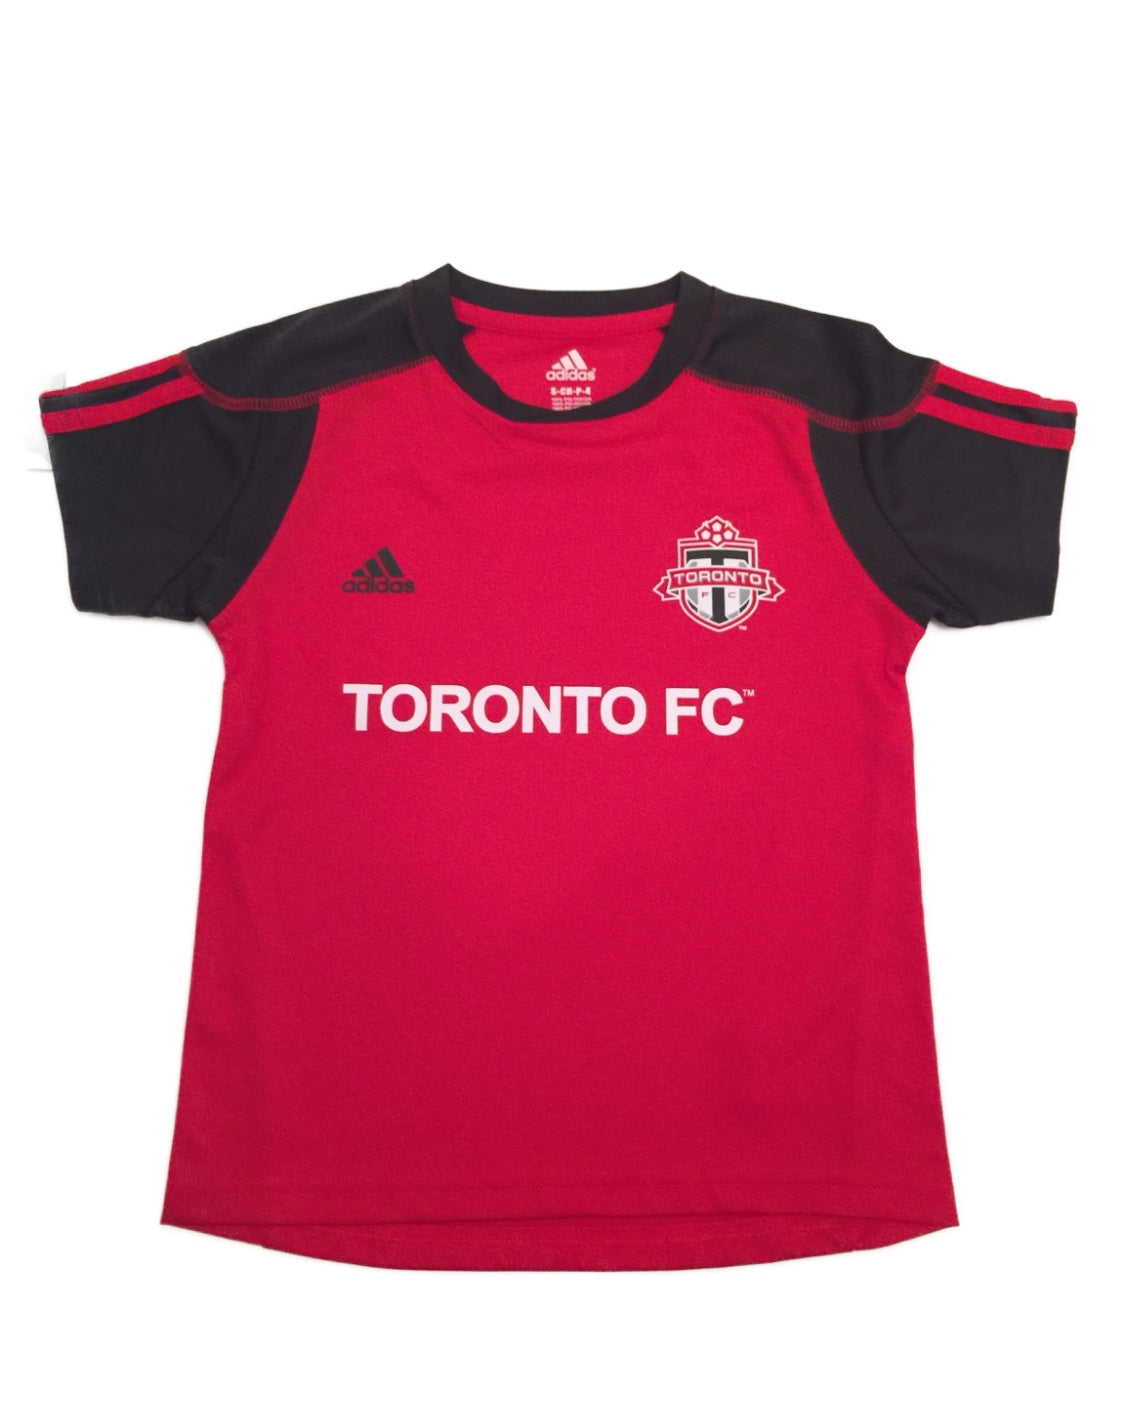 watch 7bf6b 88814 Toronto FC adidas Red MLS Soccer Kids Call Up Replica Team Jersey -  Multiple Sizes